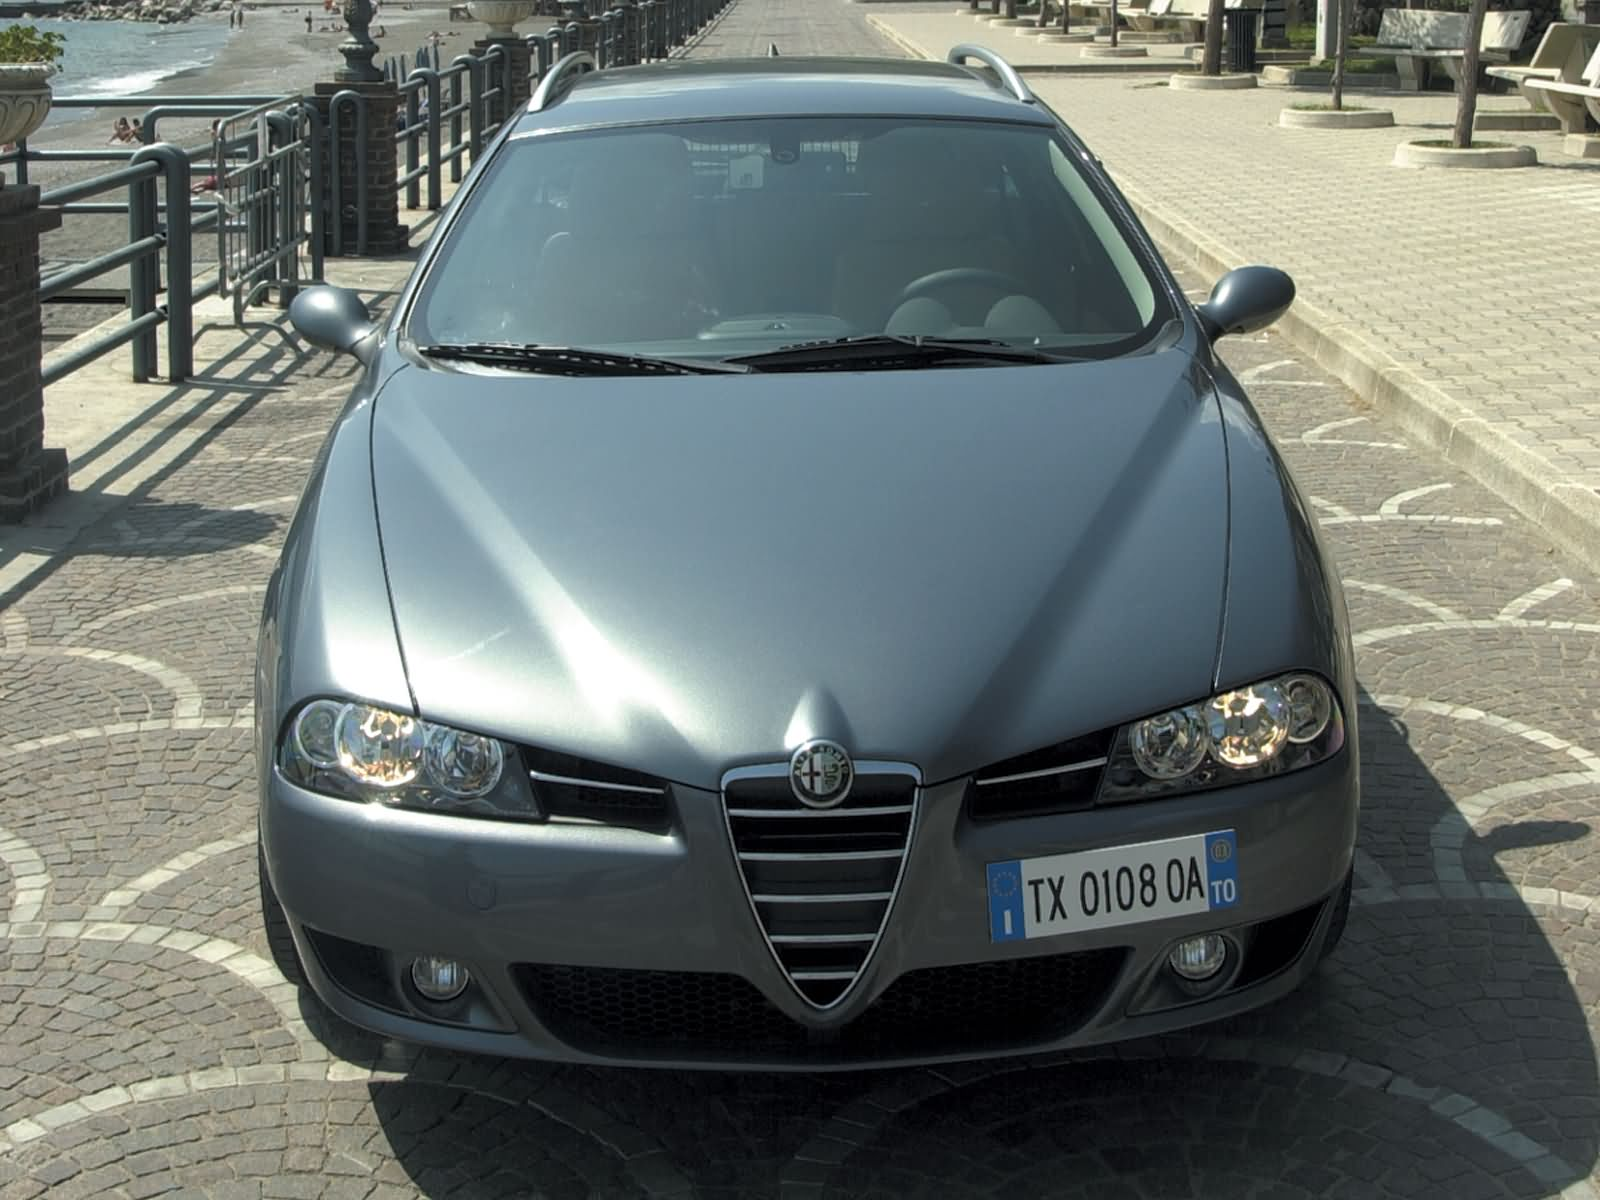 alfa romeo 156 sportwagon picture 3185 alfa romeo photo gallery. Black Bedroom Furniture Sets. Home Design Ideas